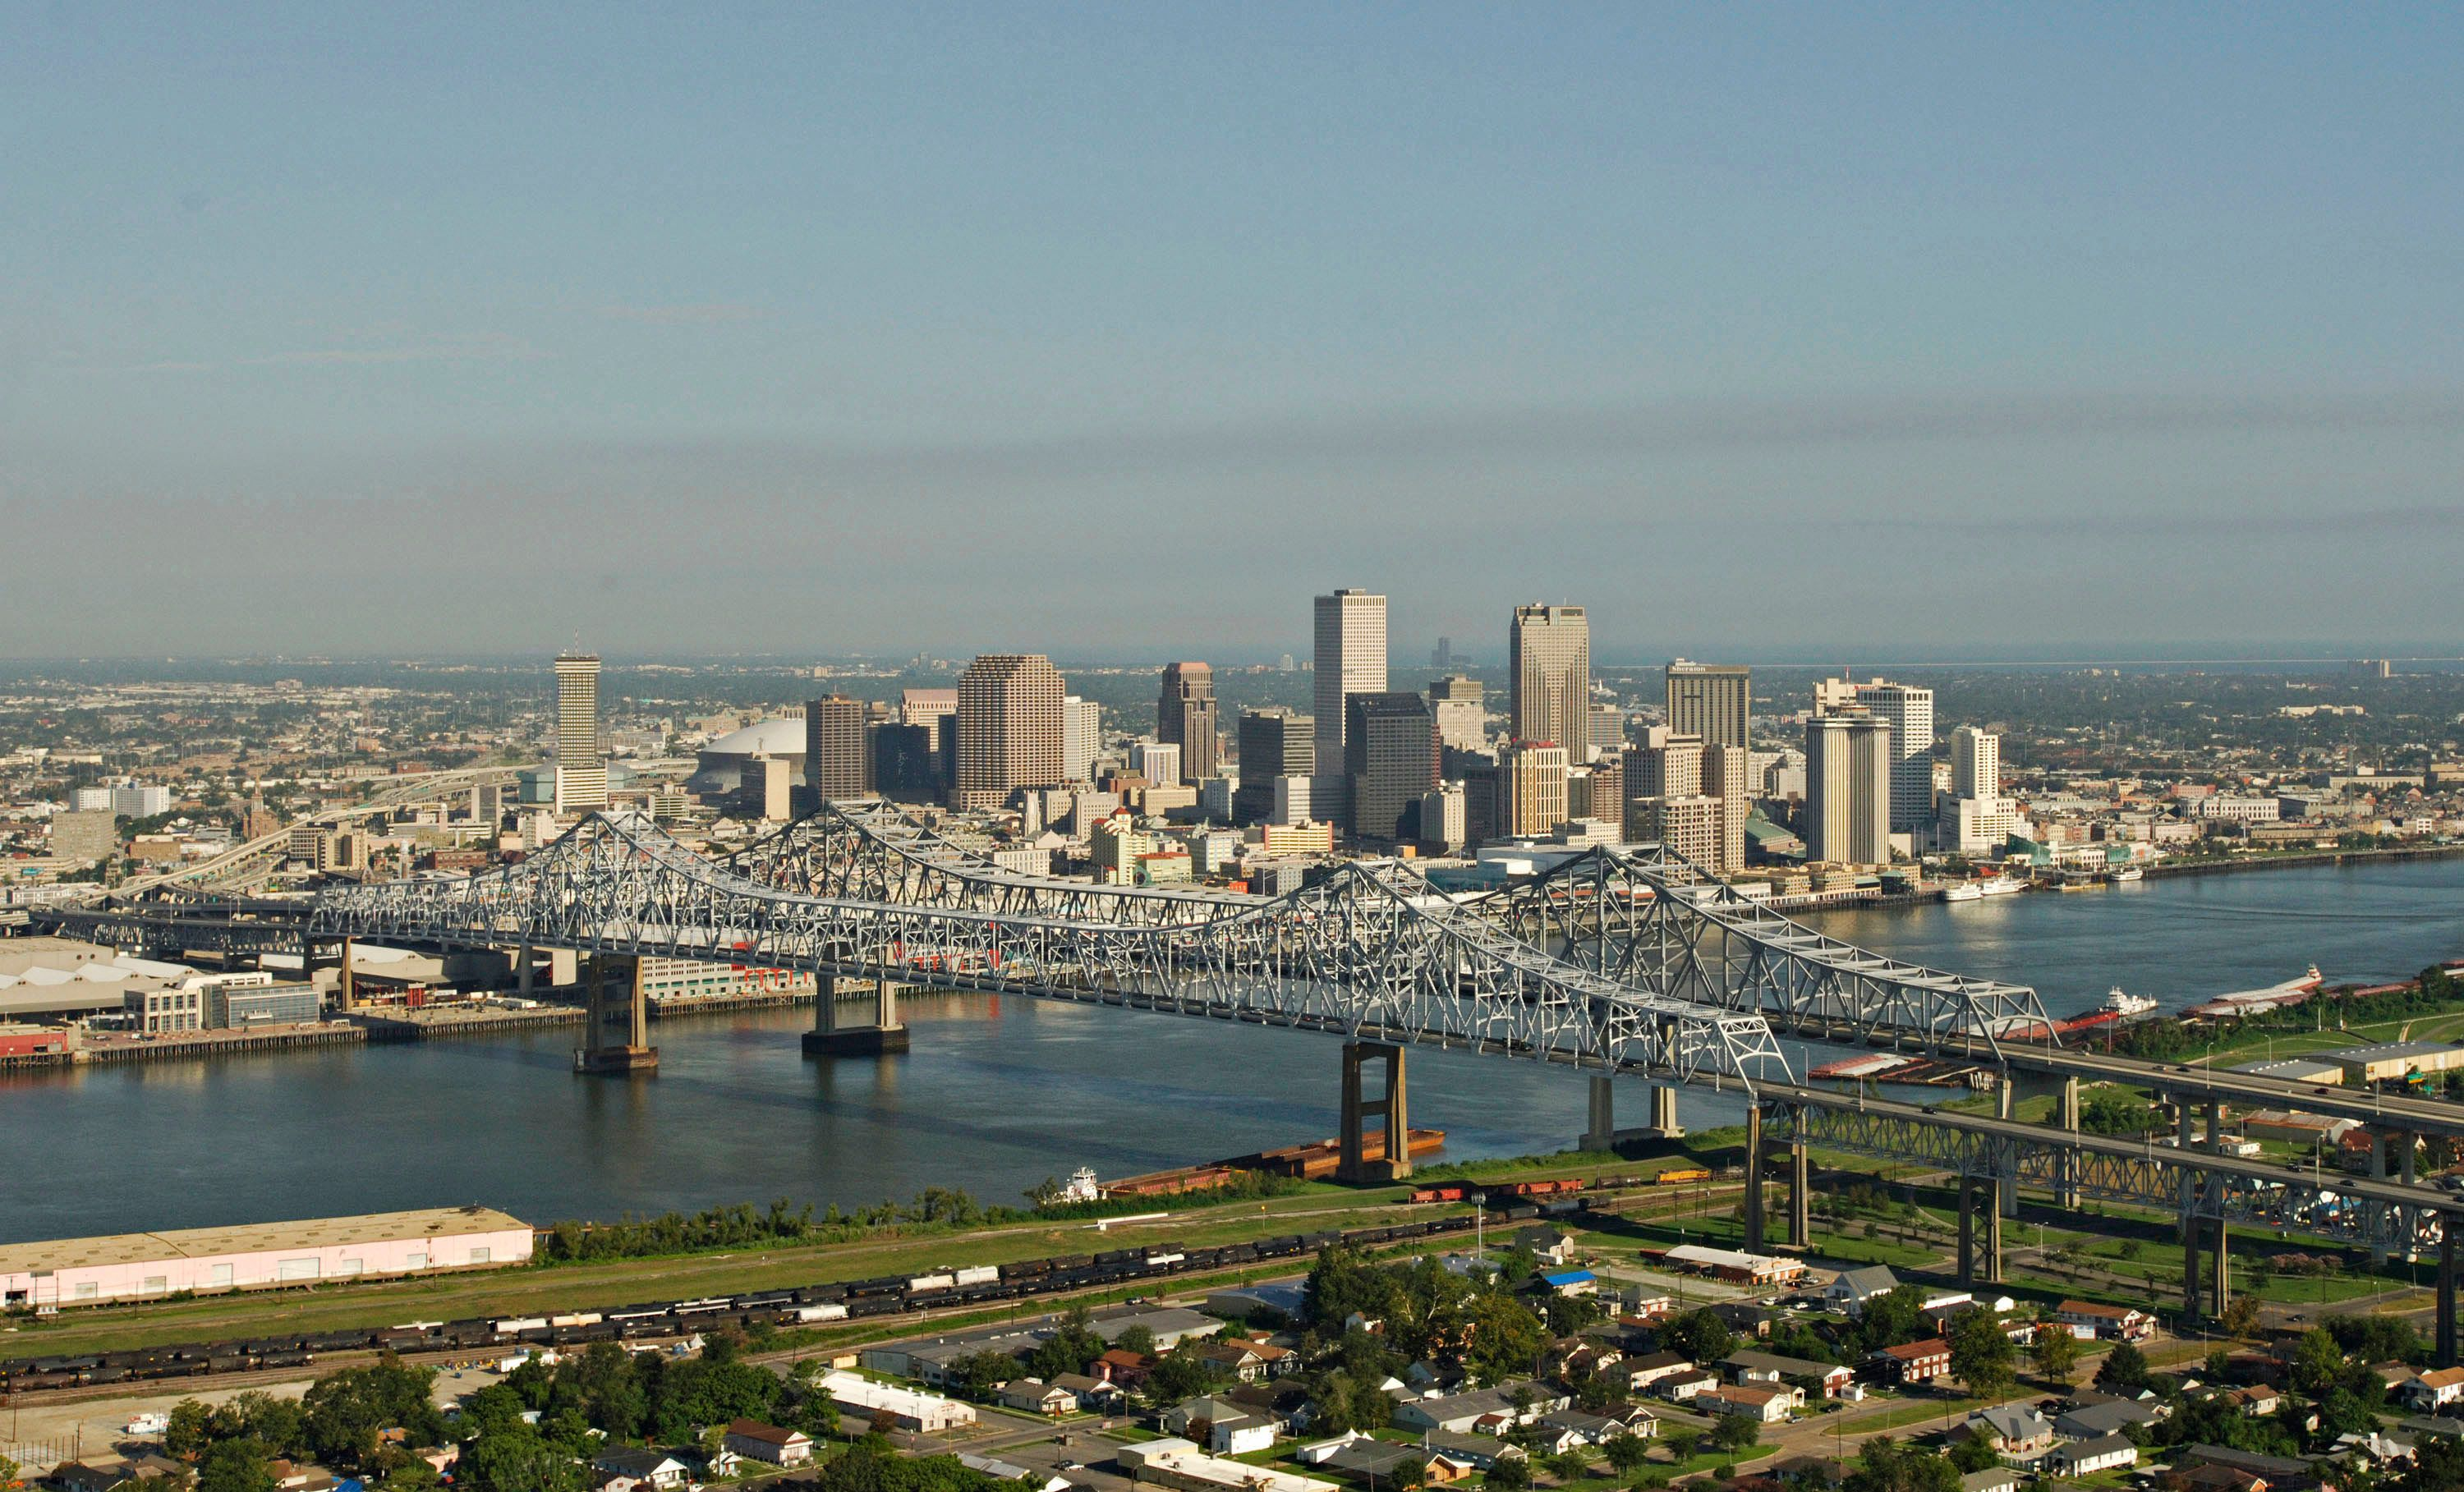 New Orleans, a city founded in 1718, is due to have its first woman mayor. LaToya Cantrell and Desiree Charbonnet procee